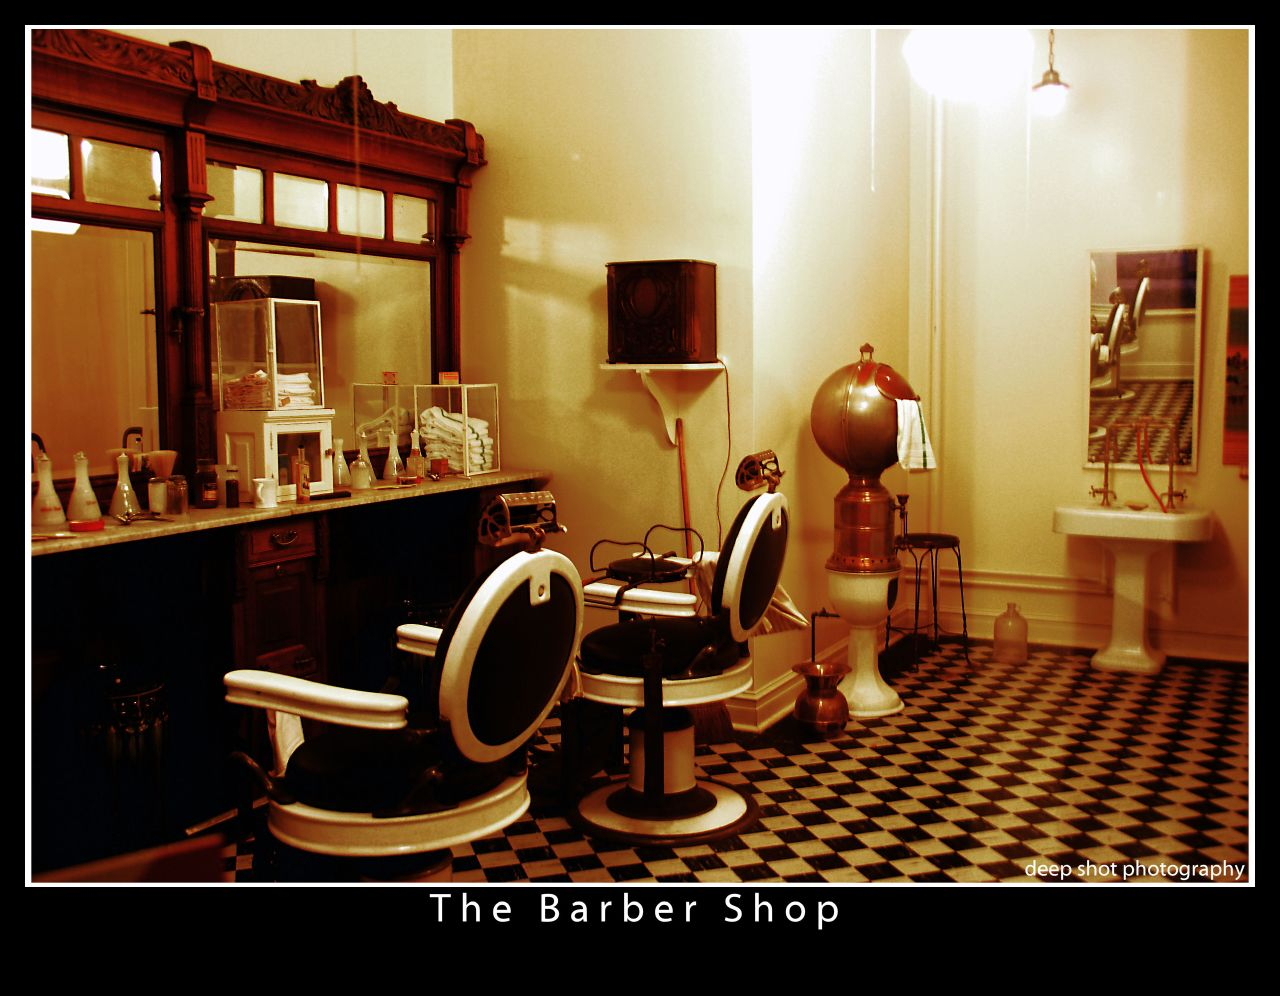 Barber Shop Albany Ny : ... barber barber decor barber school barbering coolness shop flickr shop